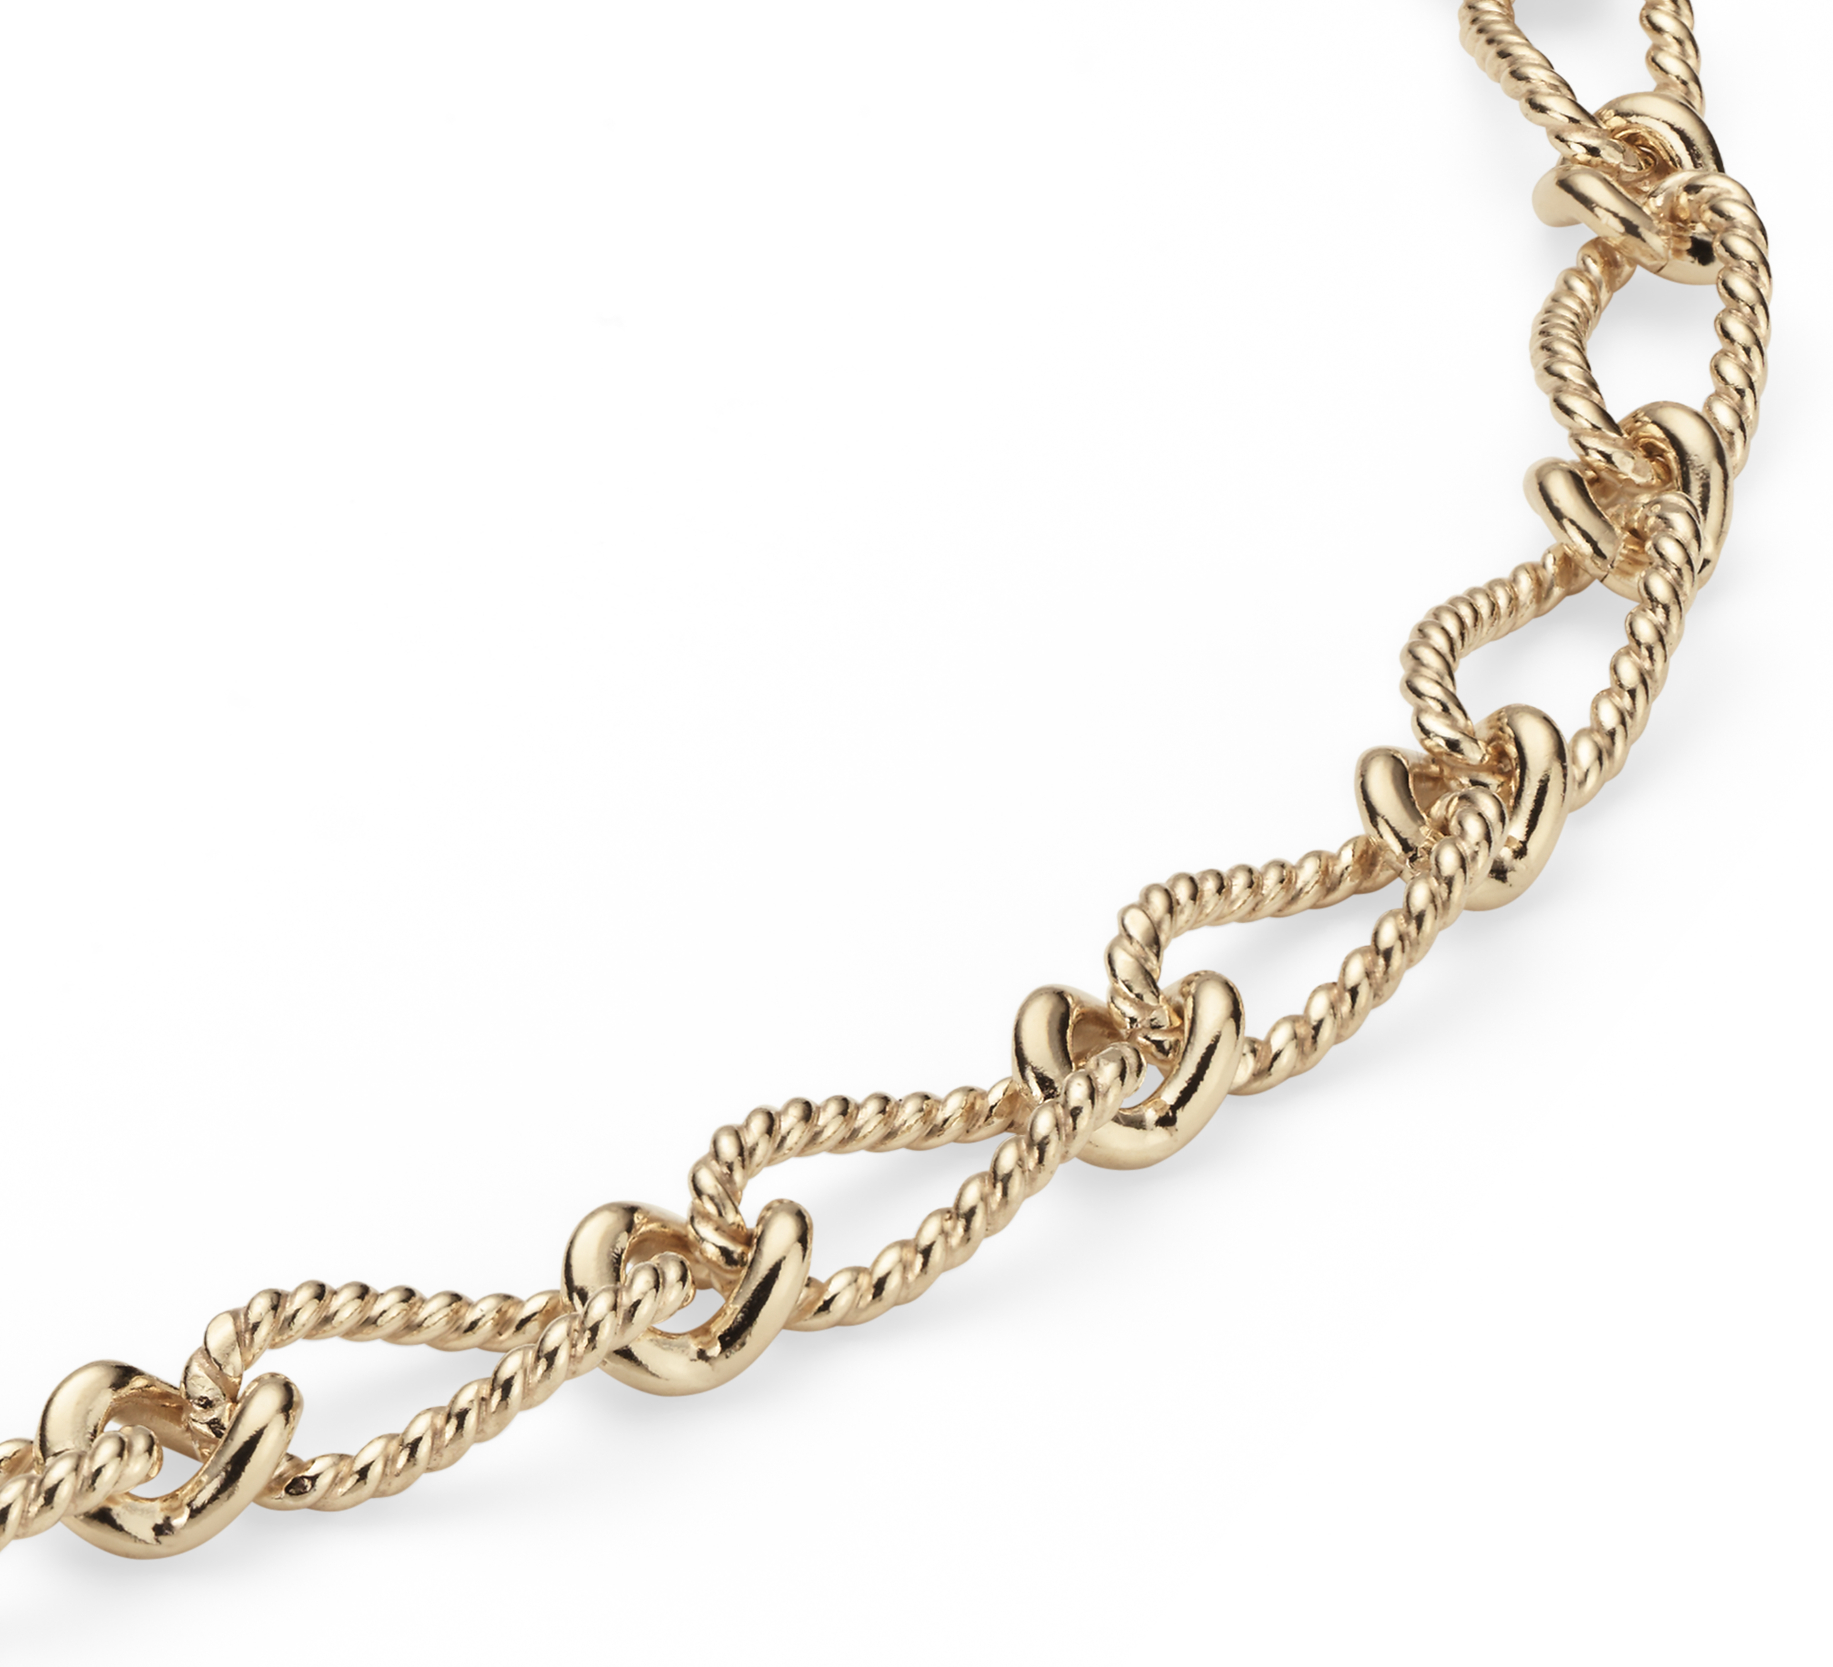 Elegant Necklace in 14k Yellow Gold